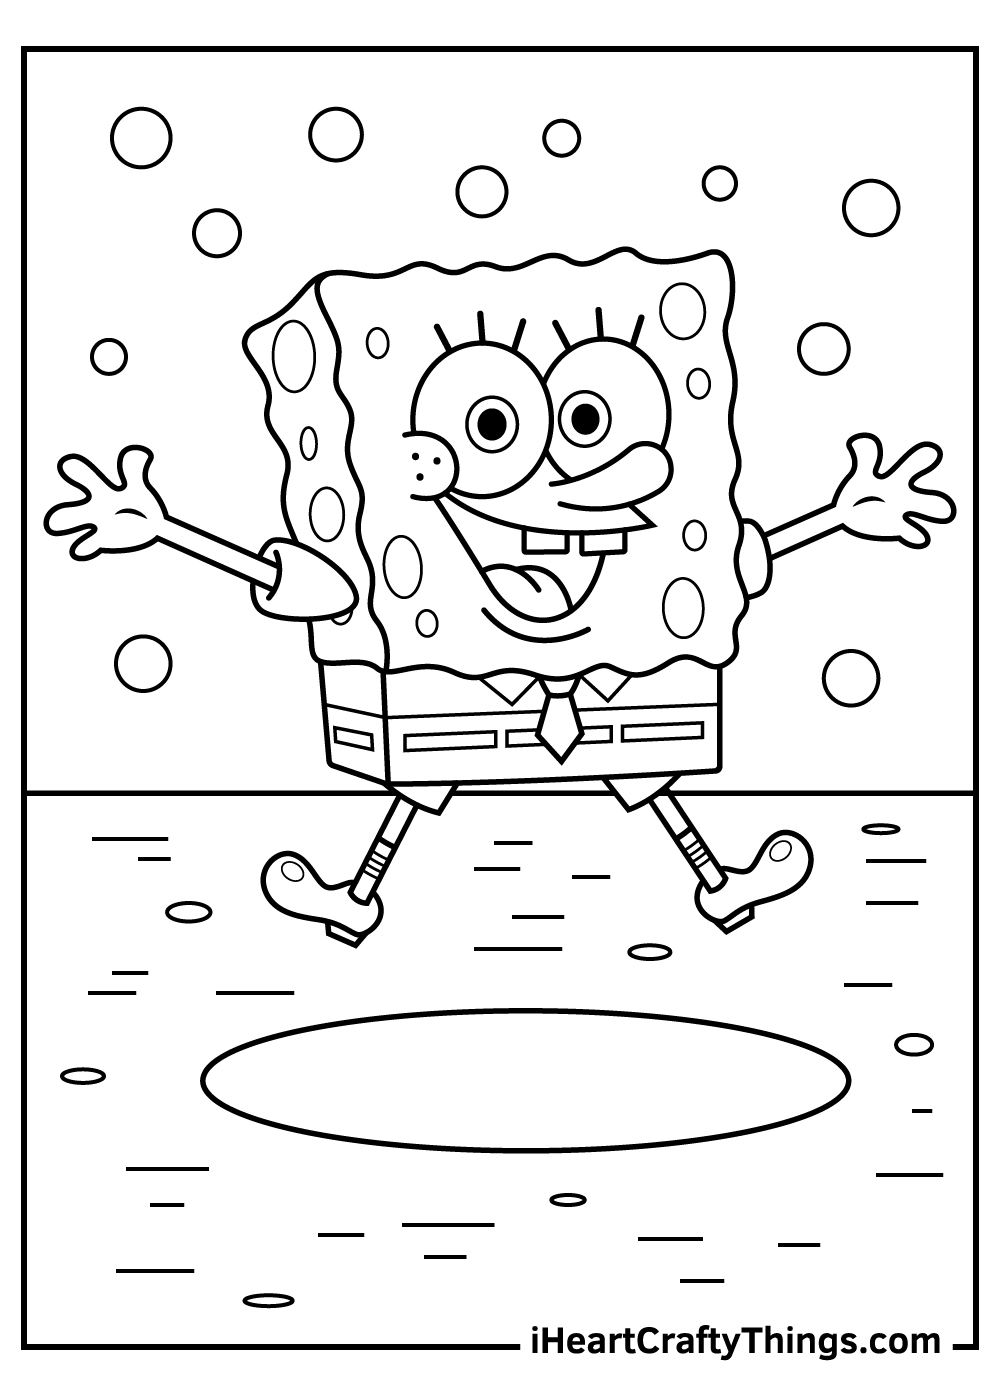 cute spongebob coloring pages to print